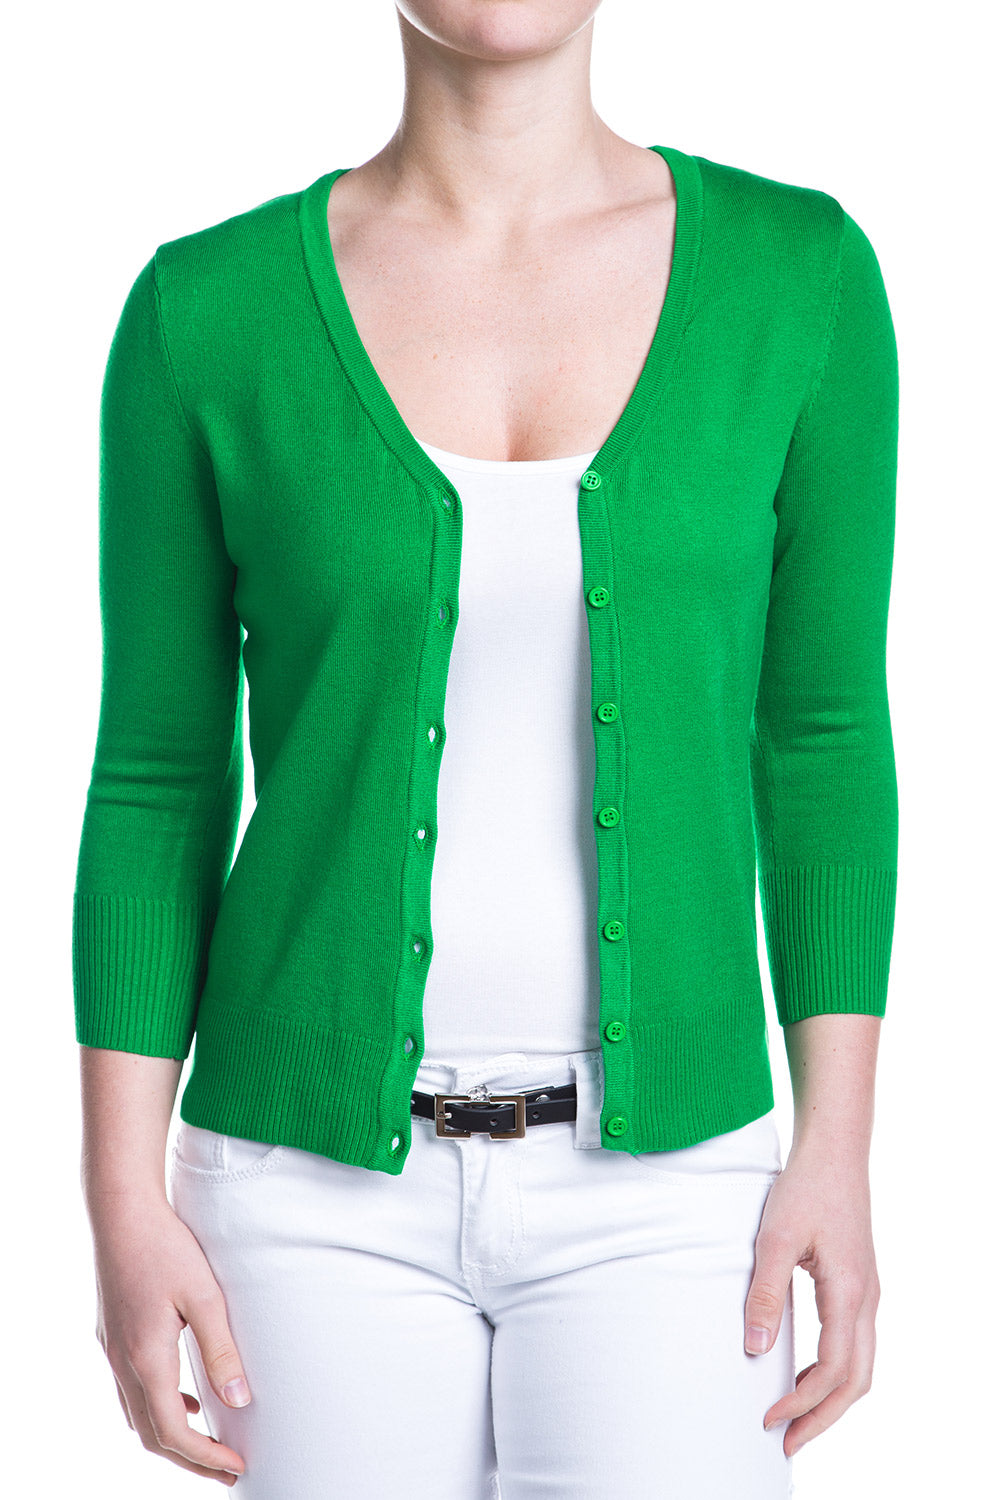 Type 4 Bright Green Cardigan